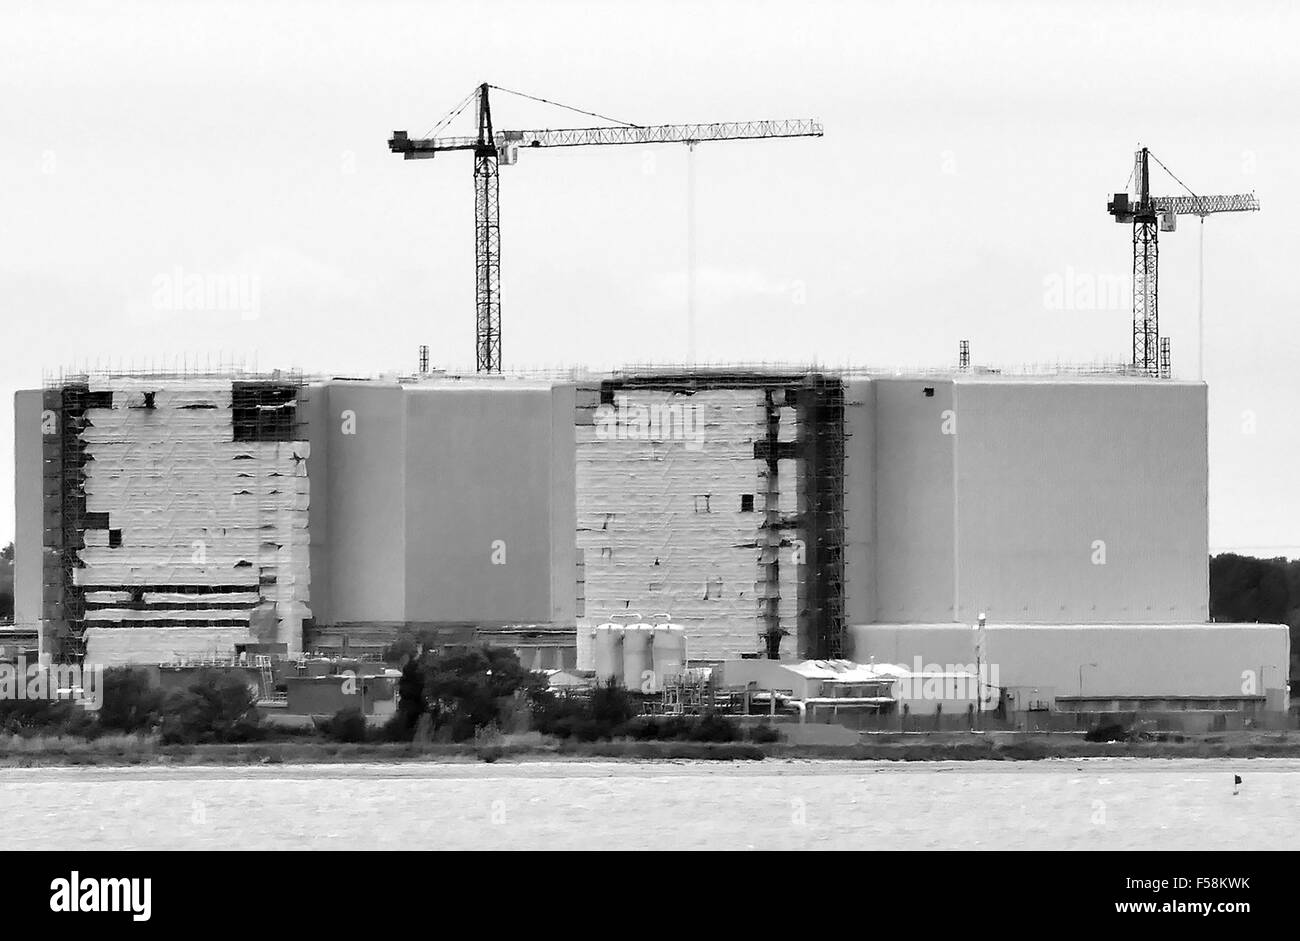 Bradwell nuclear power station Essex, photographed from West Mersea, Mersea Island looking across the river Blackwater - Stock Image